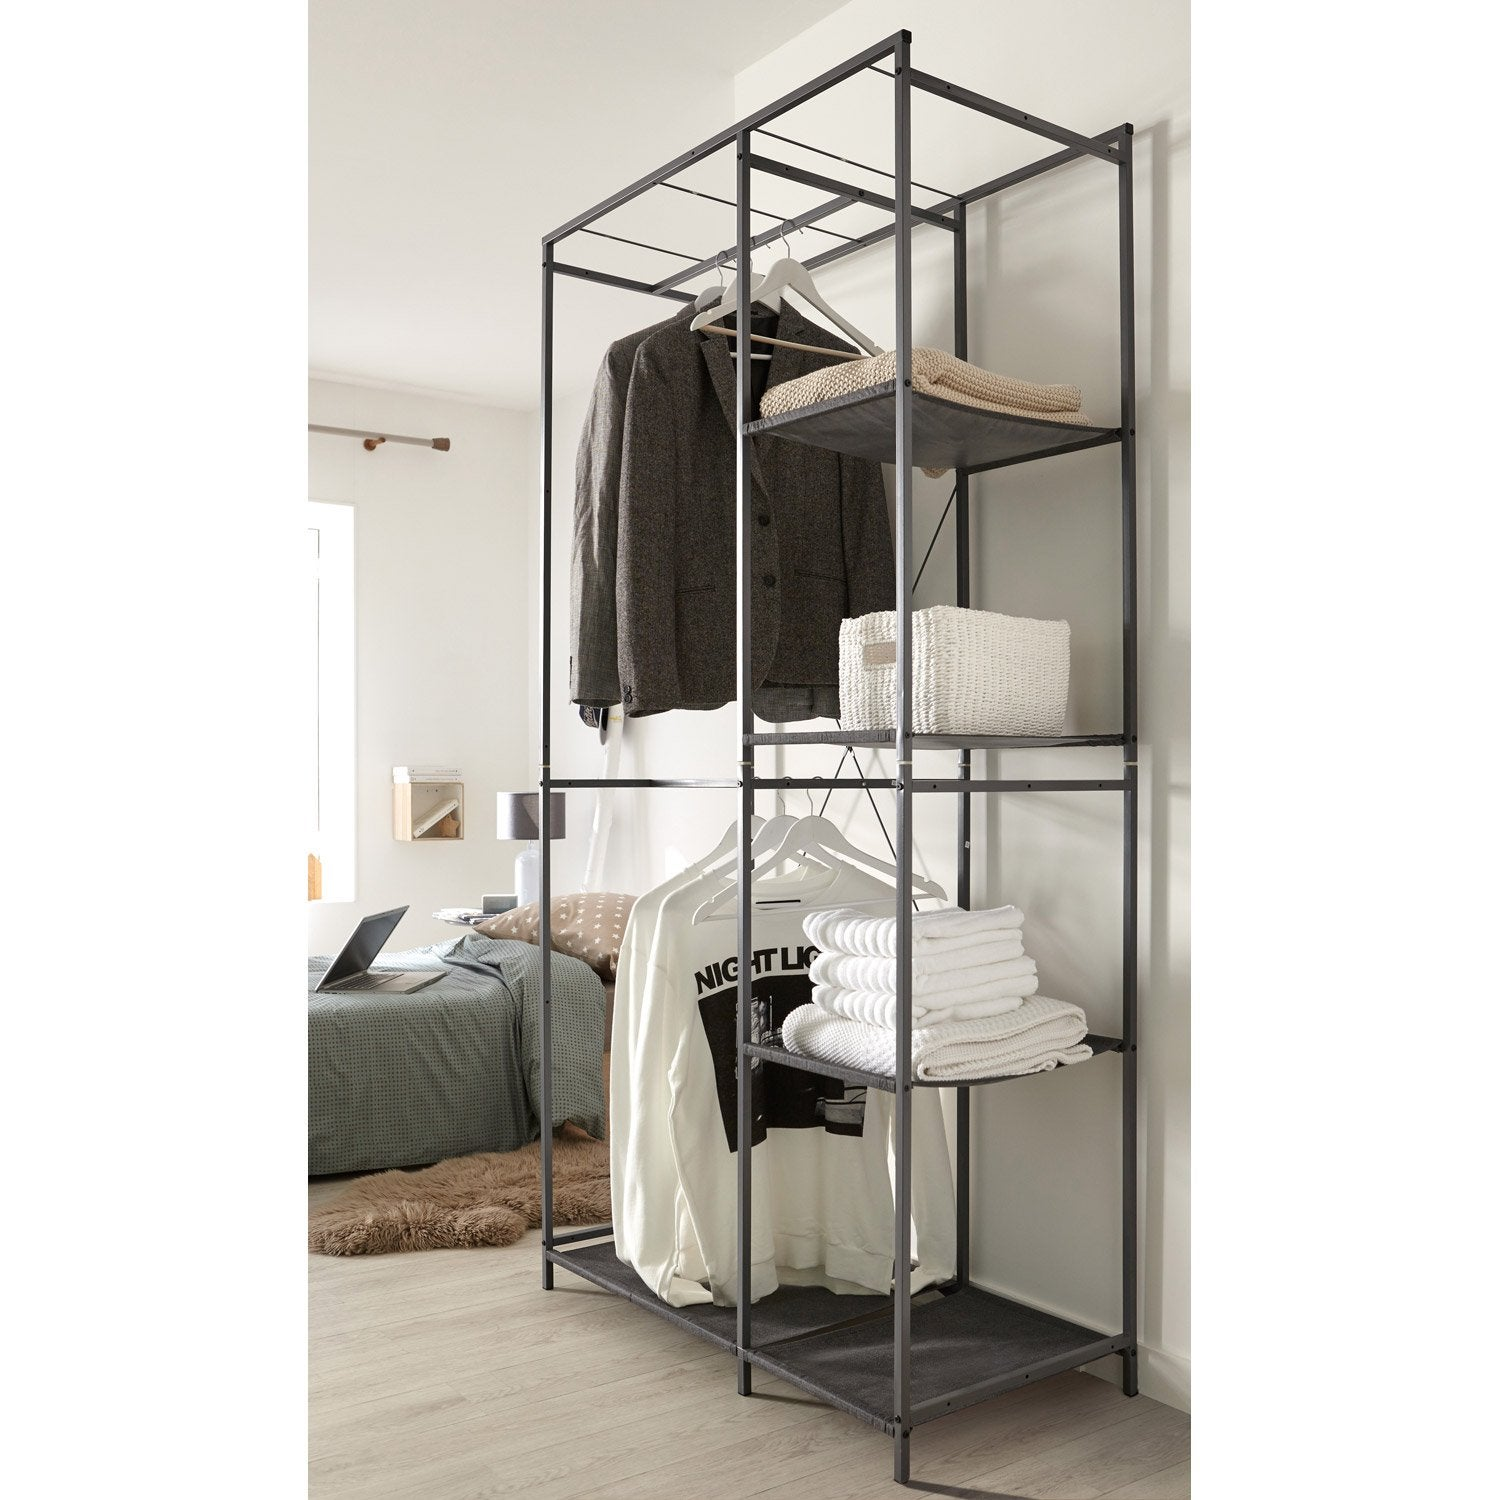 penderie 4 tag res gris acier et intiss spaceo x x cm leroy merlin. Black Bedroom Furniture Sets. Home Design Ideas